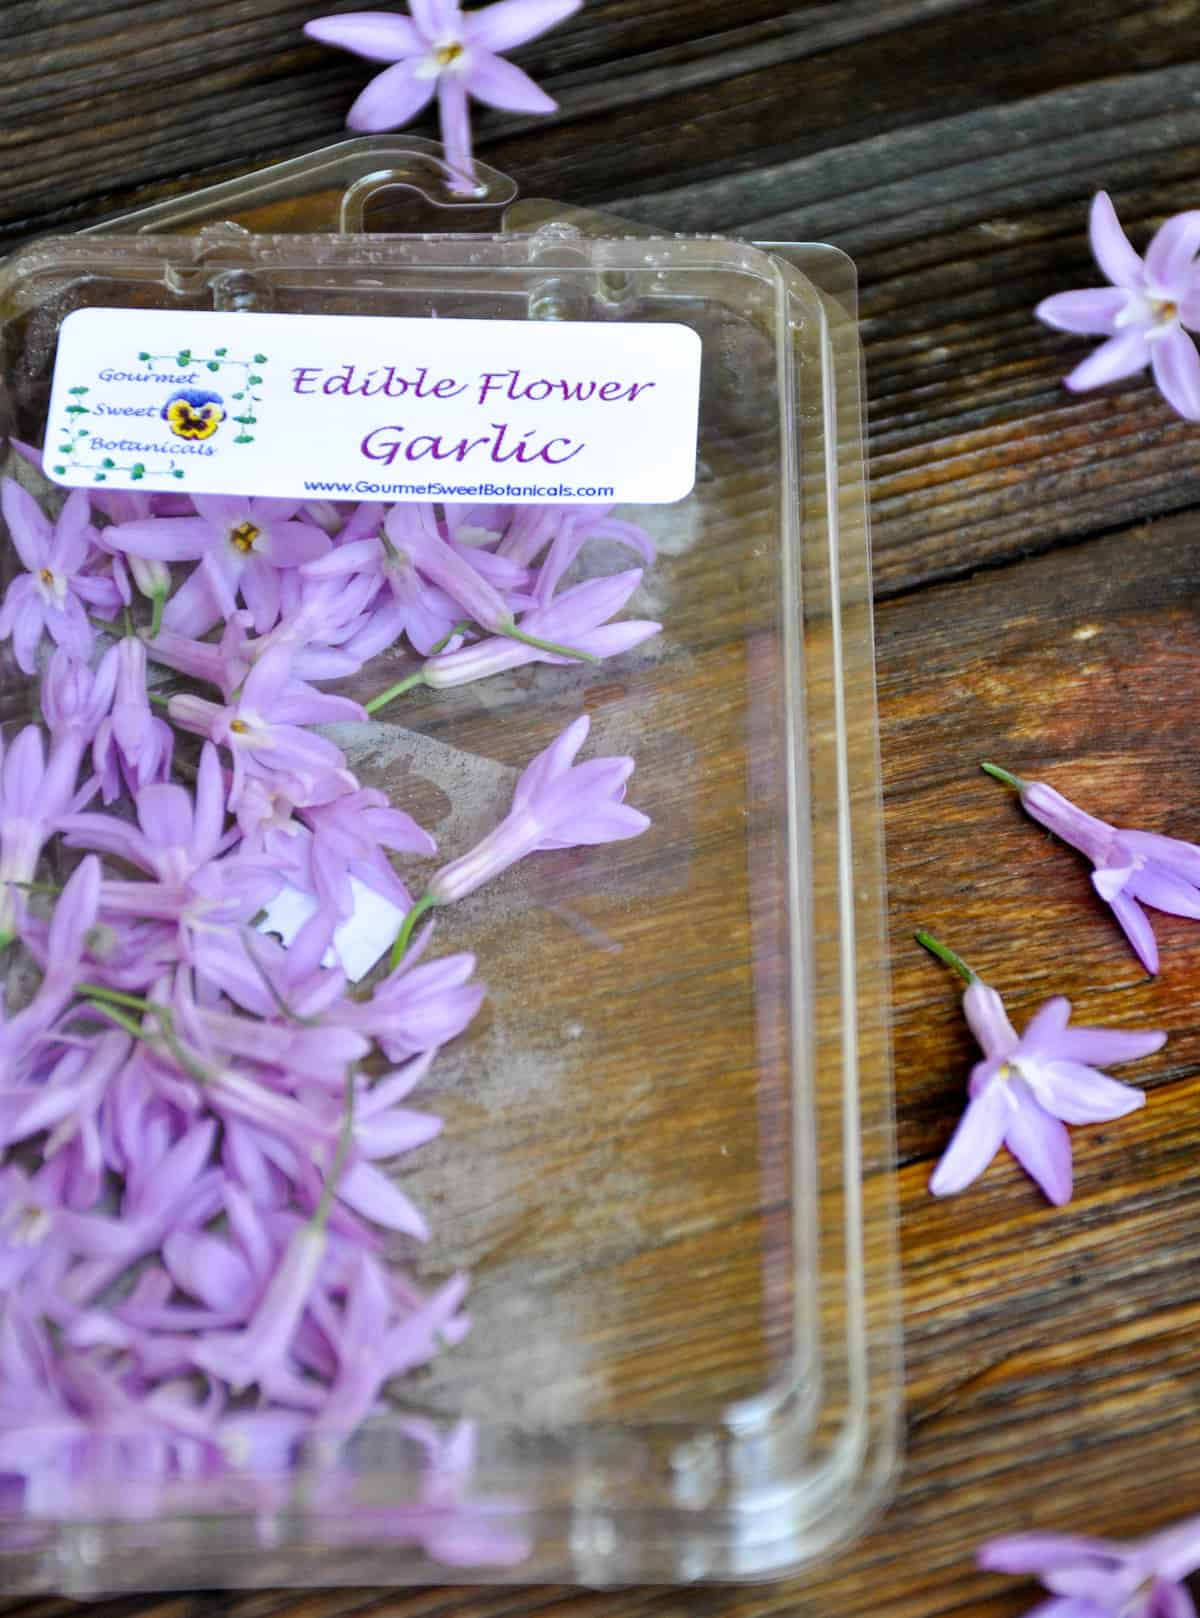 edible flower garlic